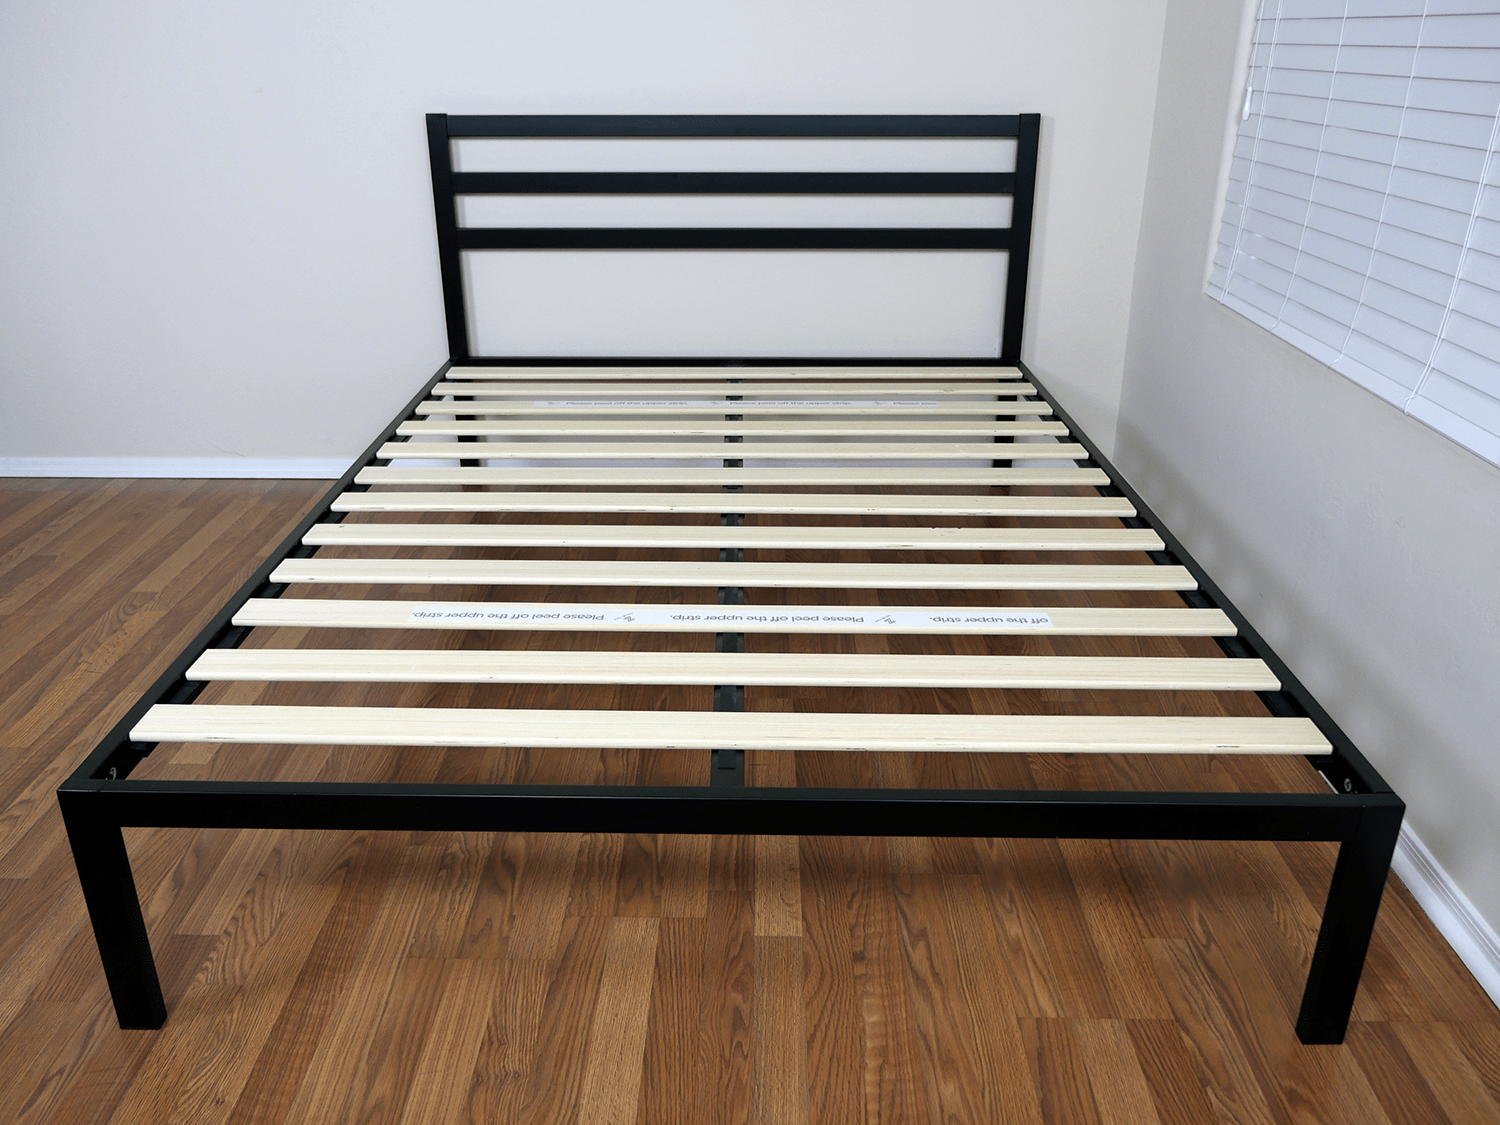 Zinus platform bed construction